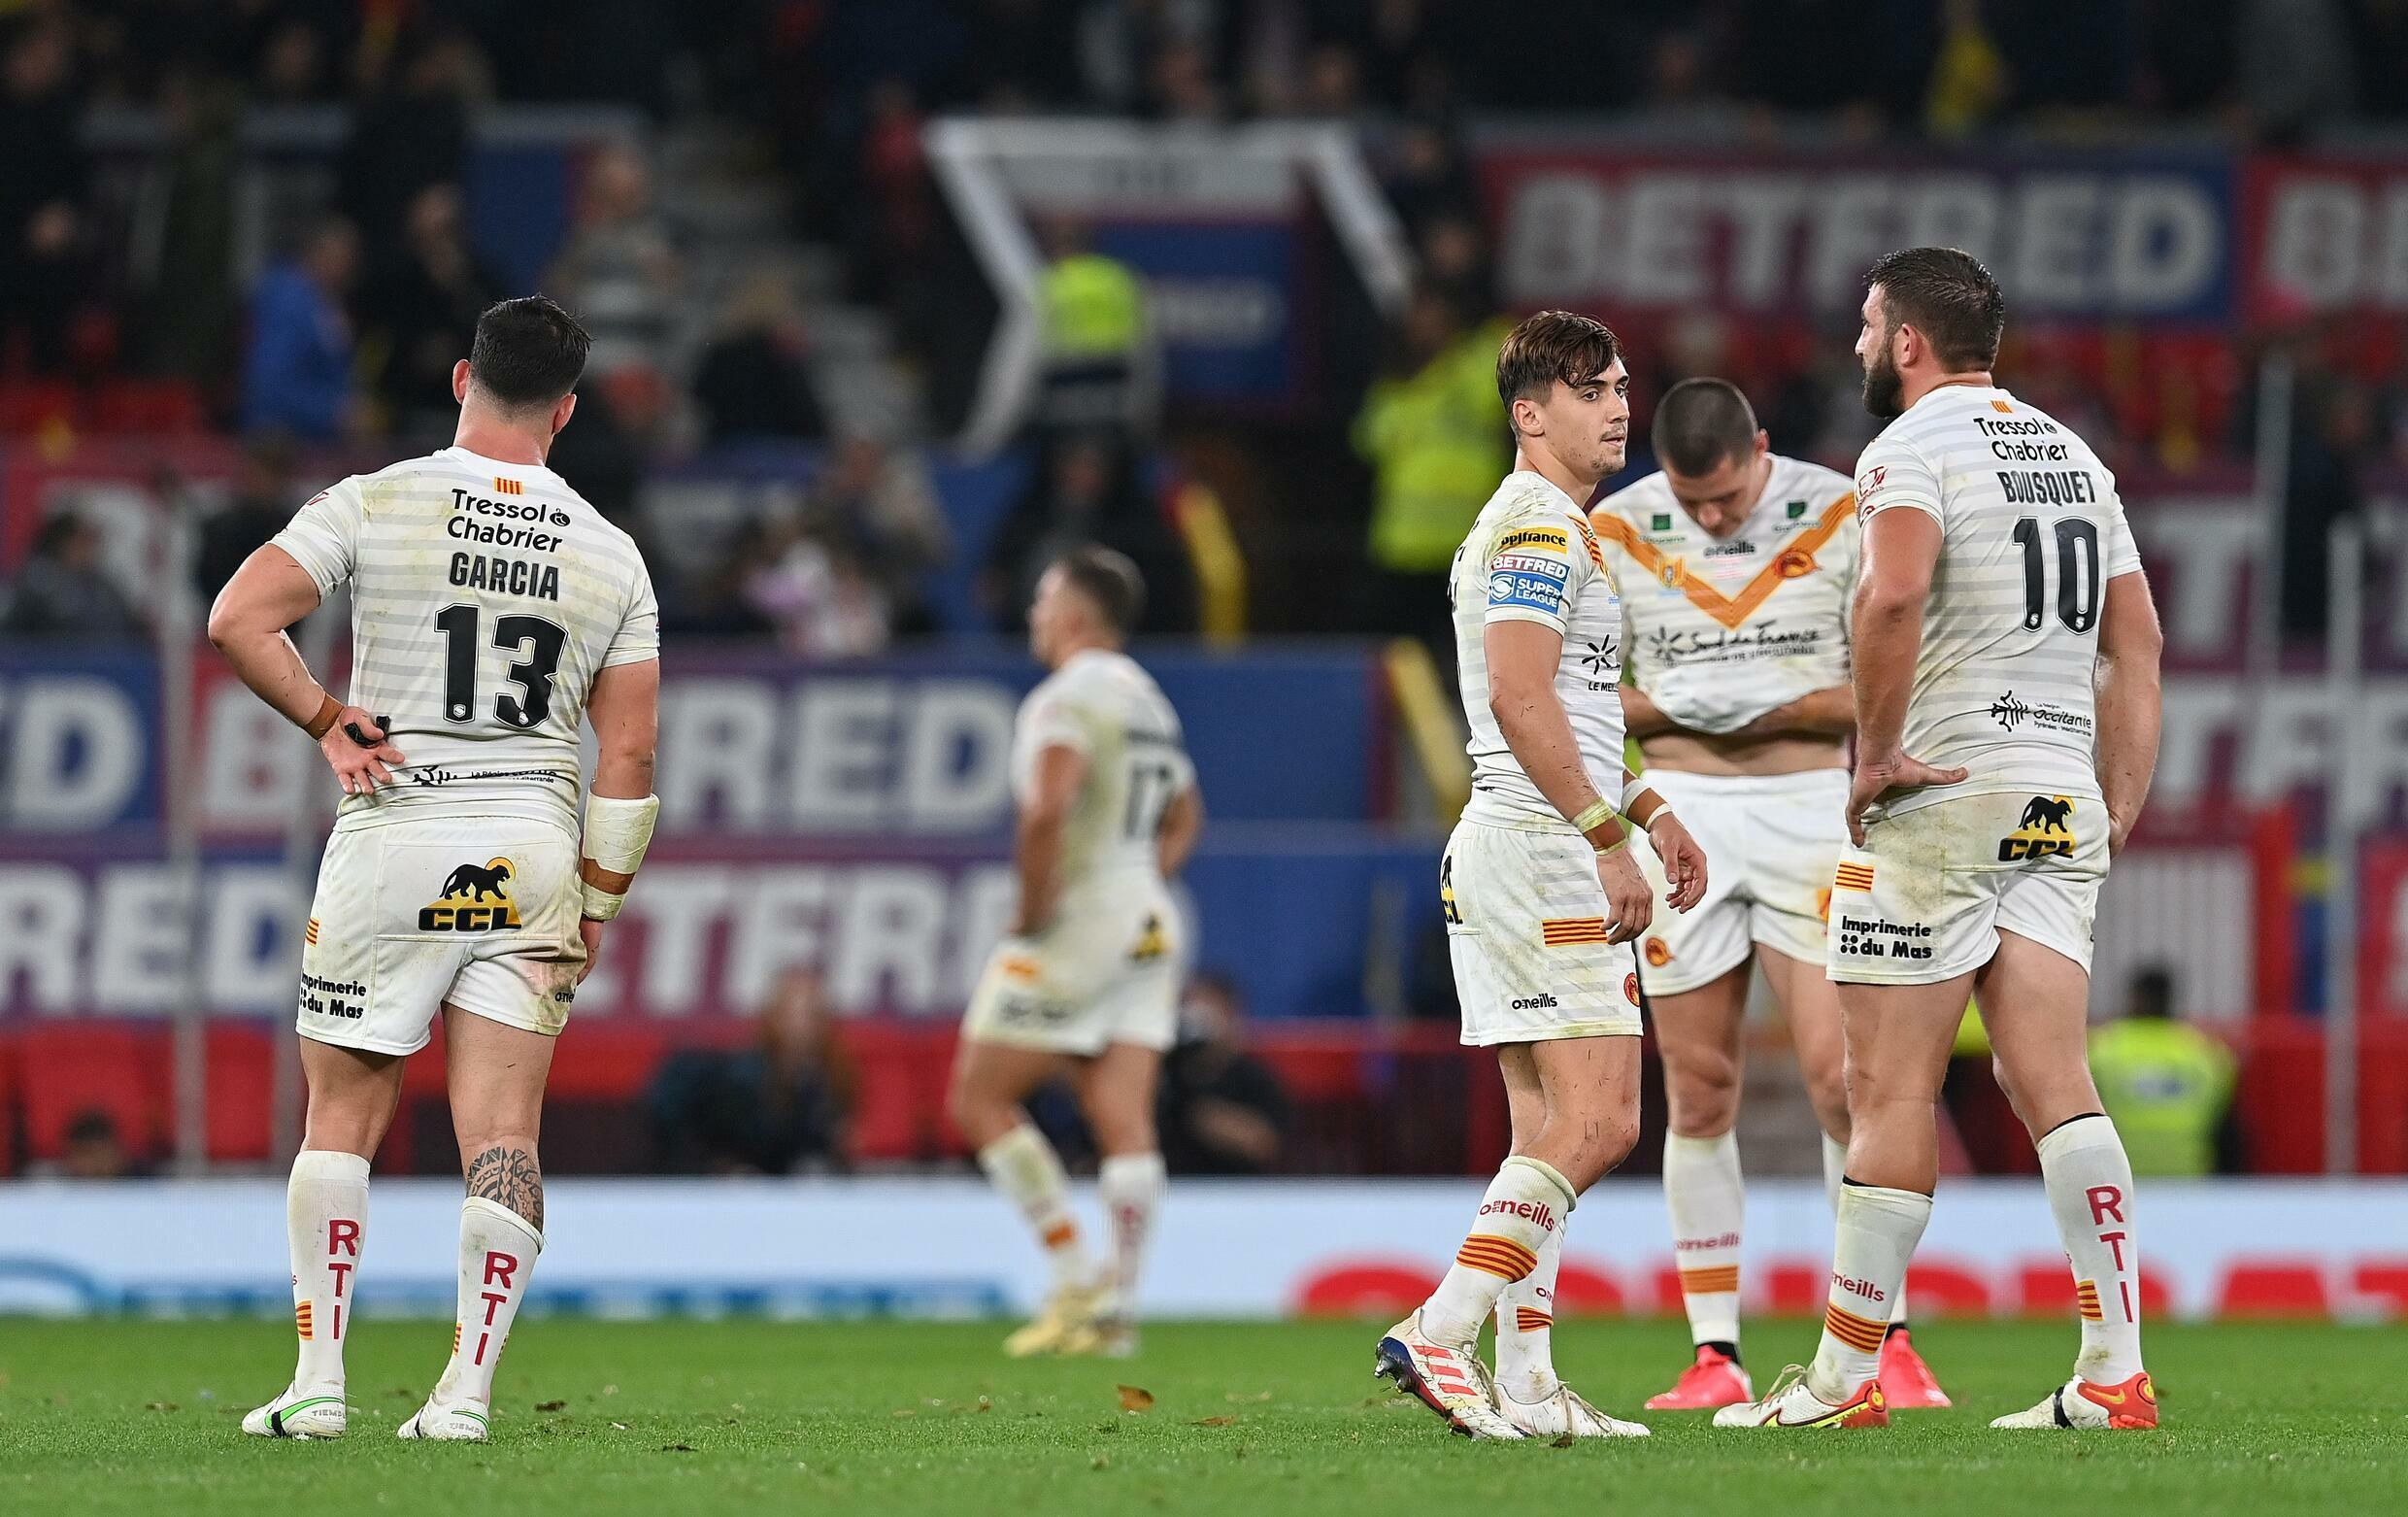 Catalan players despair after losing to St Helens in the Super League final at Old Trafford on October 9, 2021